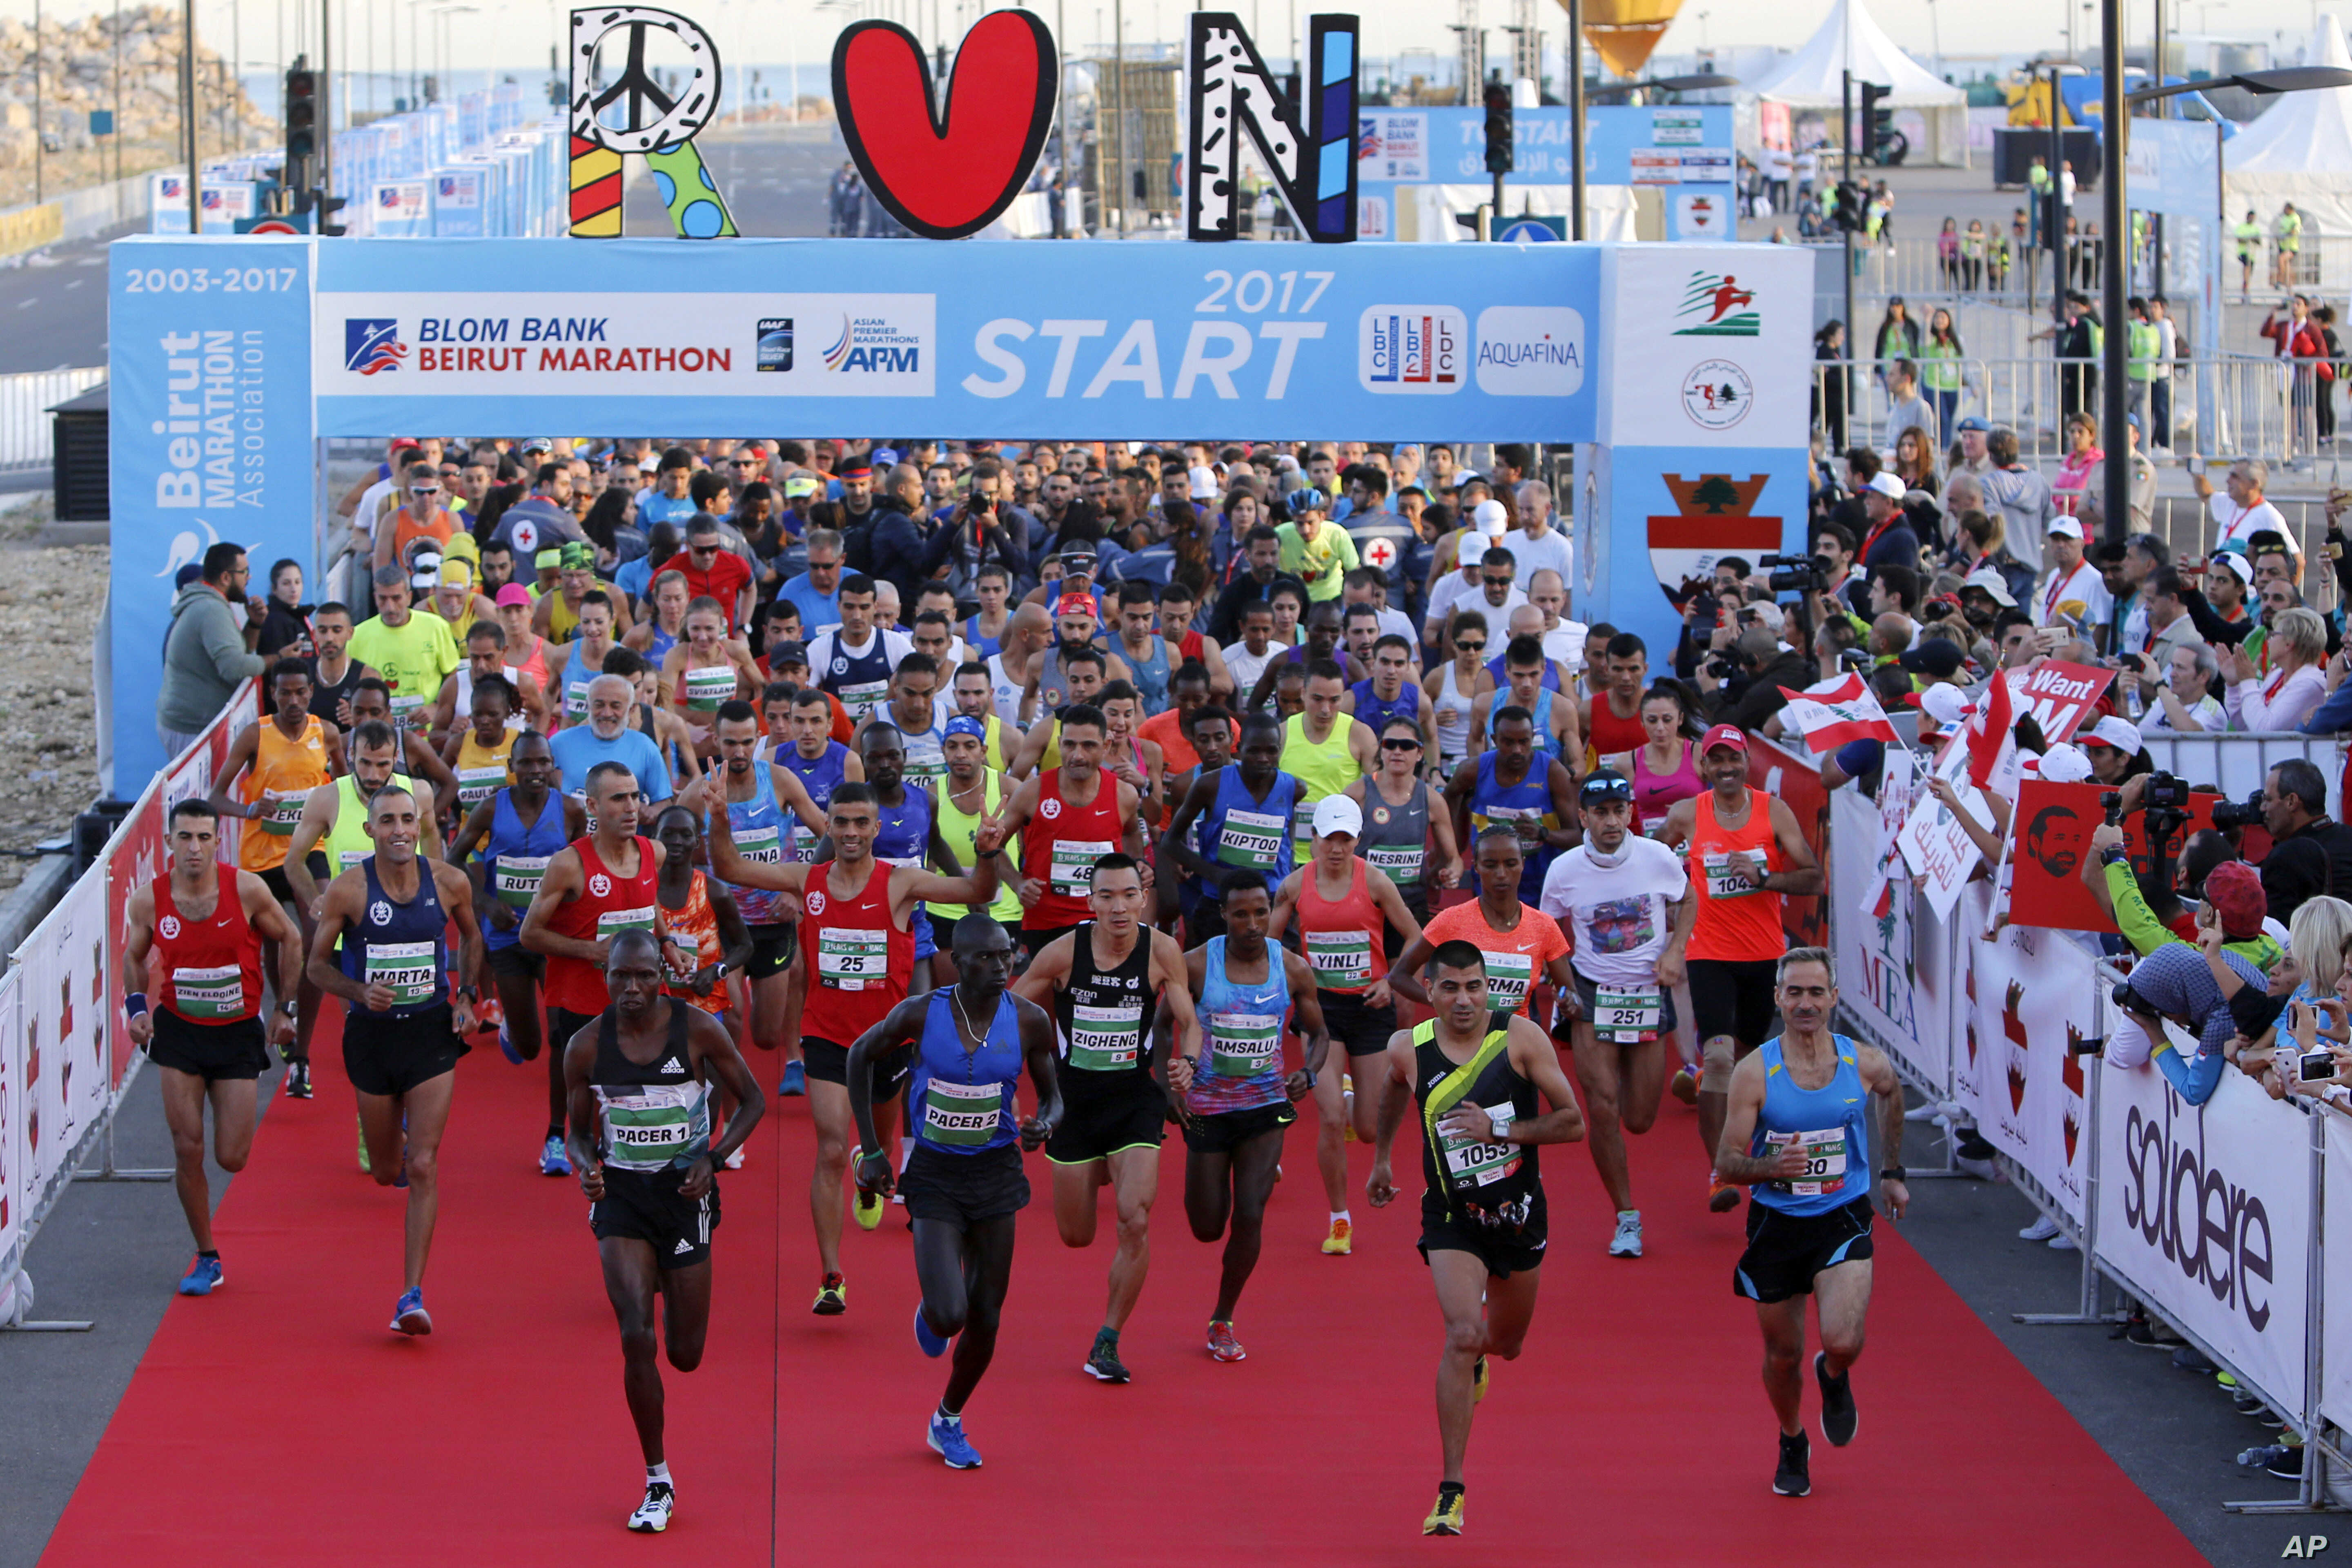 Runners compete in the Beirut Marathon, Sunday, Nov. 12, 2017. Absent from the marathon this year is the outgoing PM Saad Hariri, a regular participant, who resigned from his post unexpectedly last week while in Saudi Arabia.